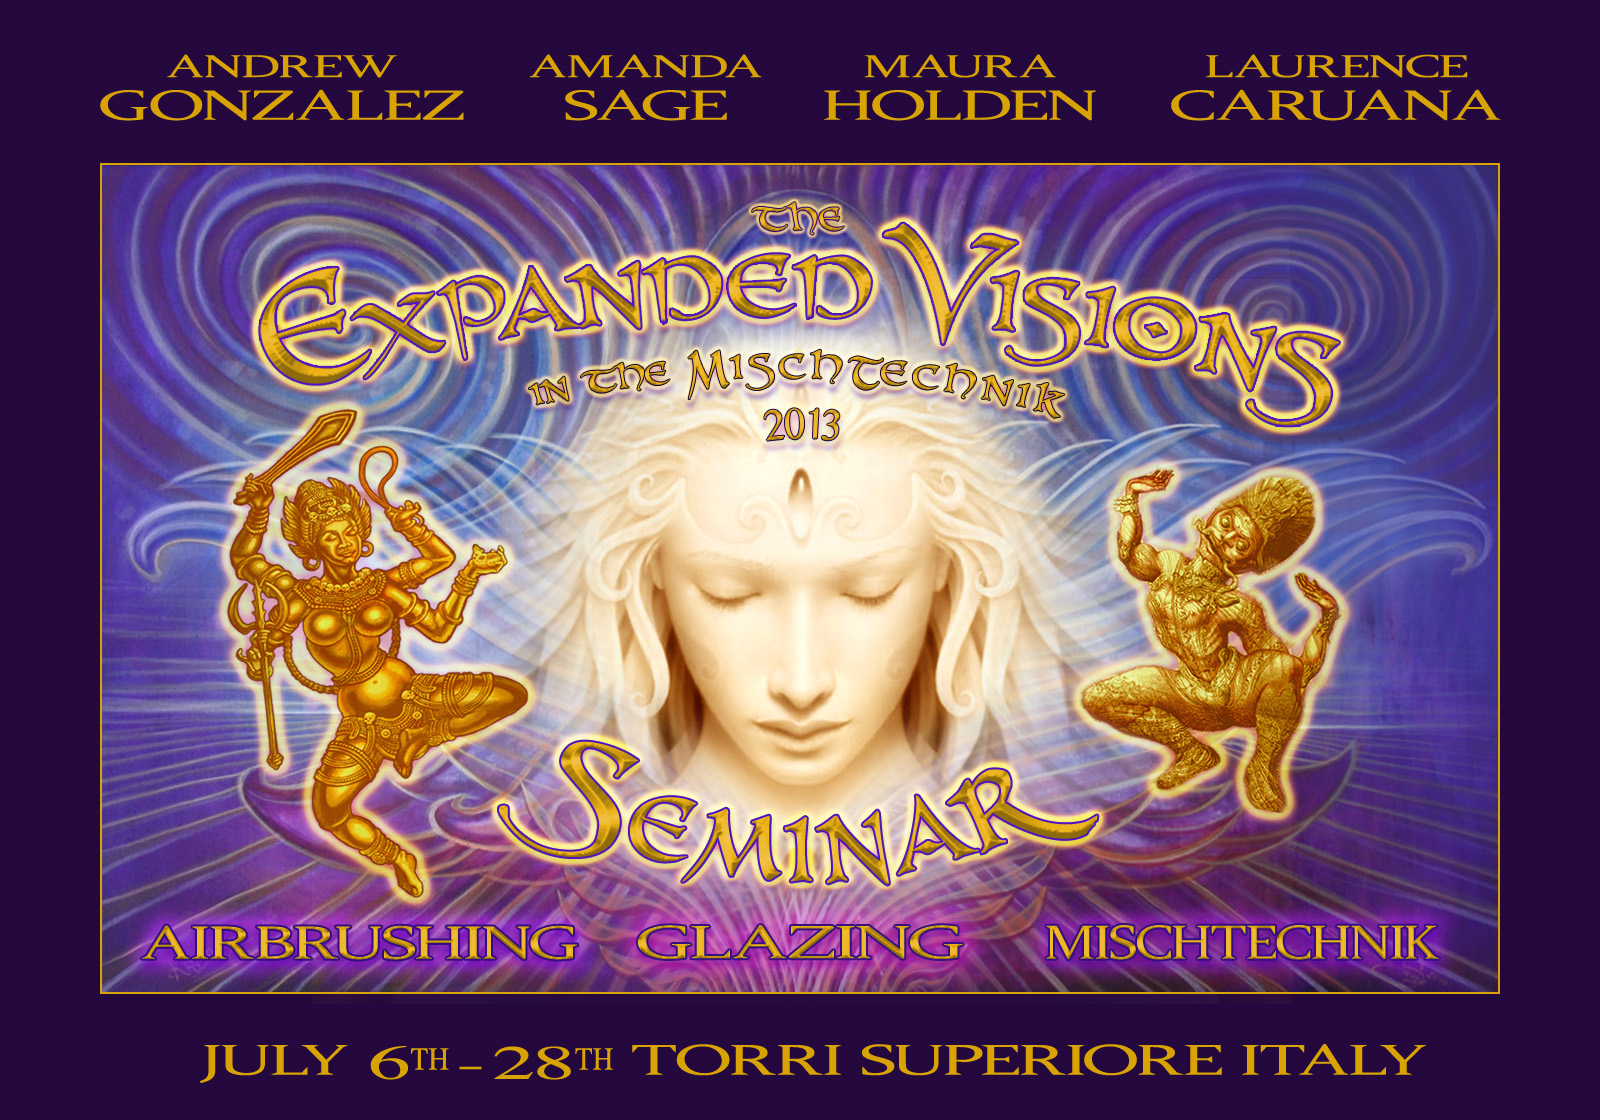 The Expanded Visions in the Mischtechnik Seminar July 6 - 28, 2013